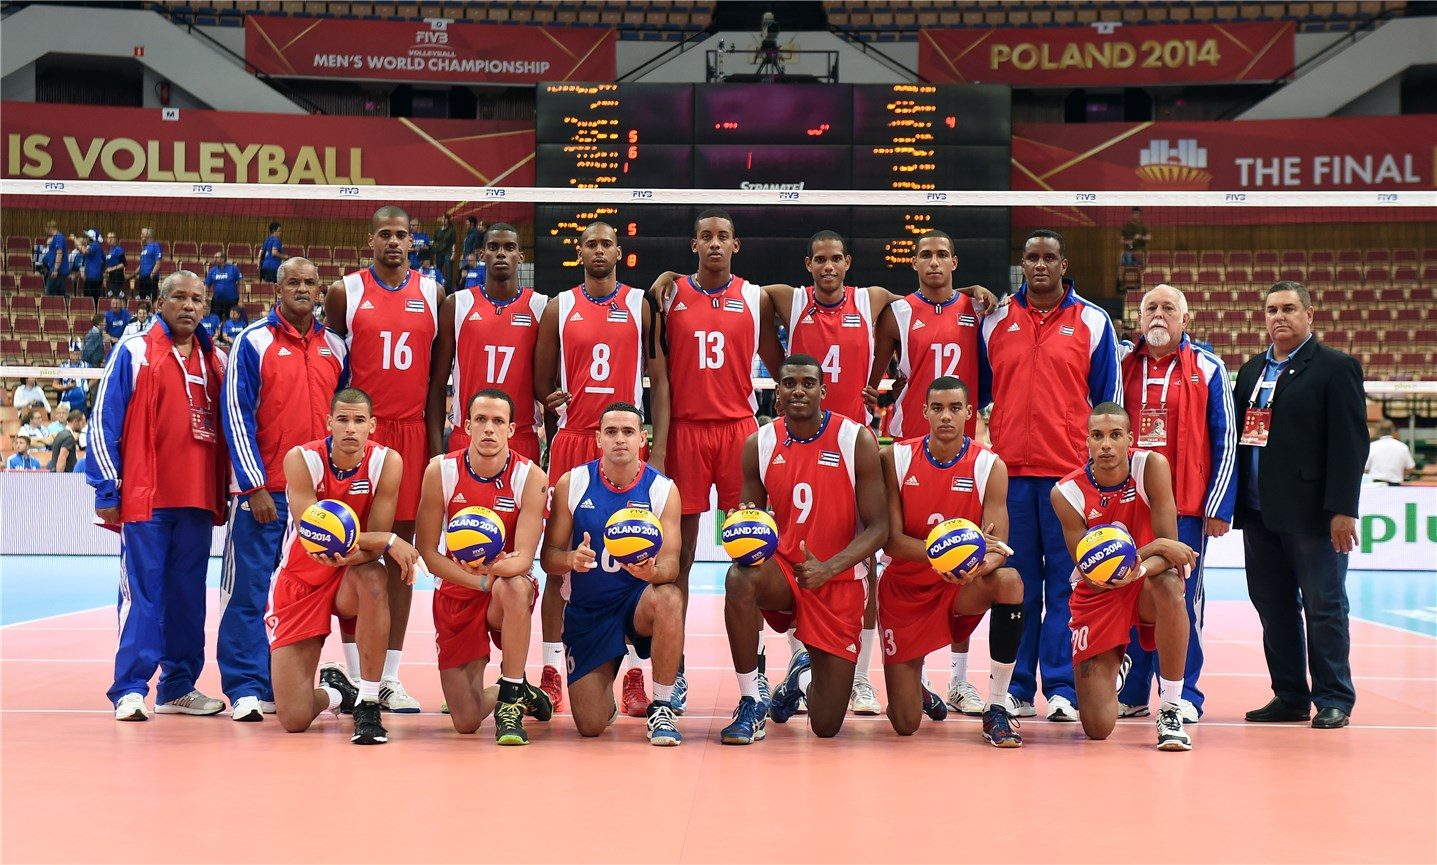 Overview Cuba Fivb Volleyball Men S World Championship Poland 2014